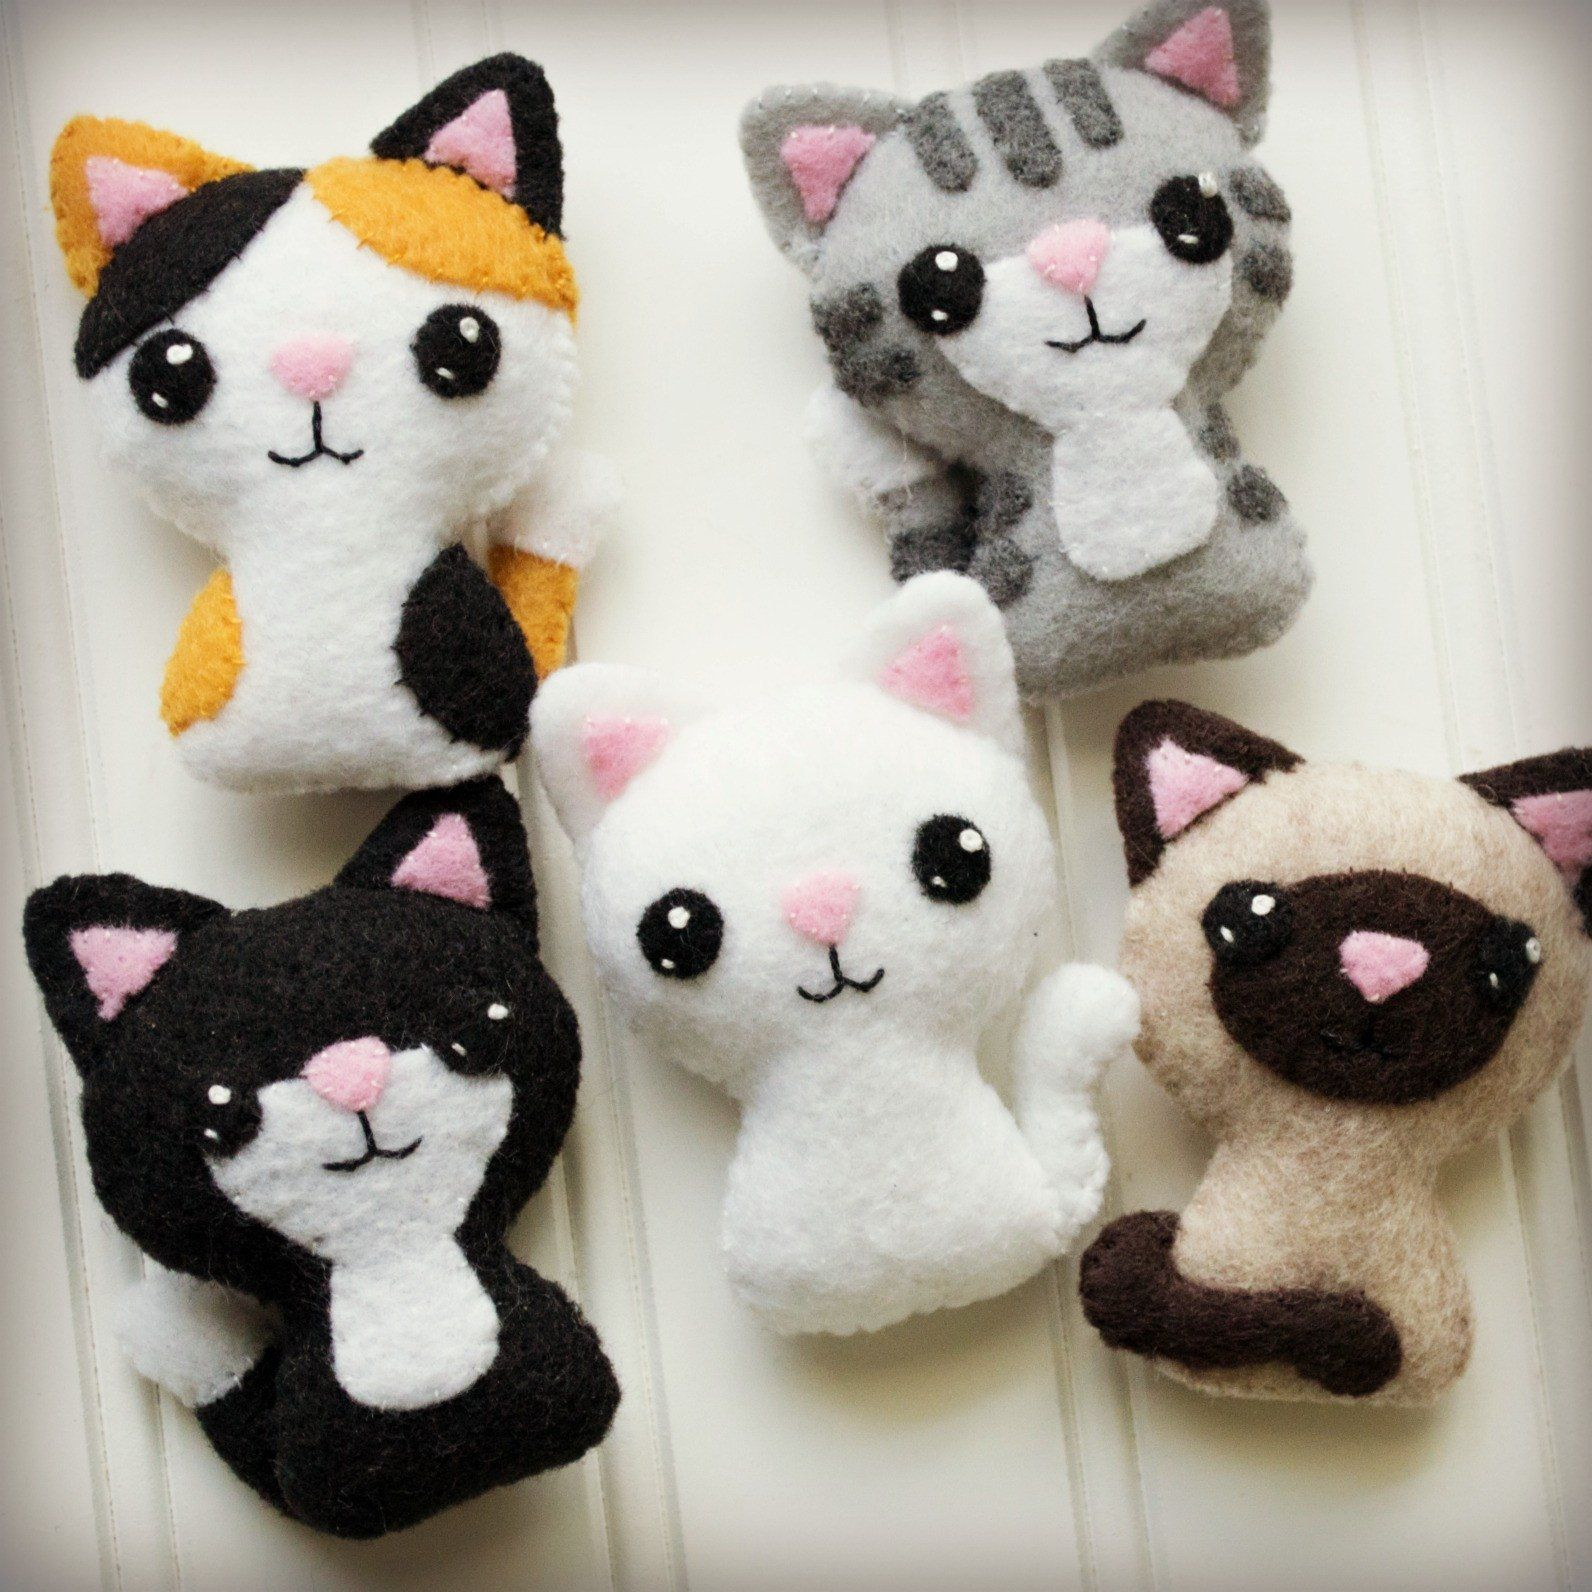 Felt Cat Sewing Pattern  Swat Team Kitties  Craftyaliencom